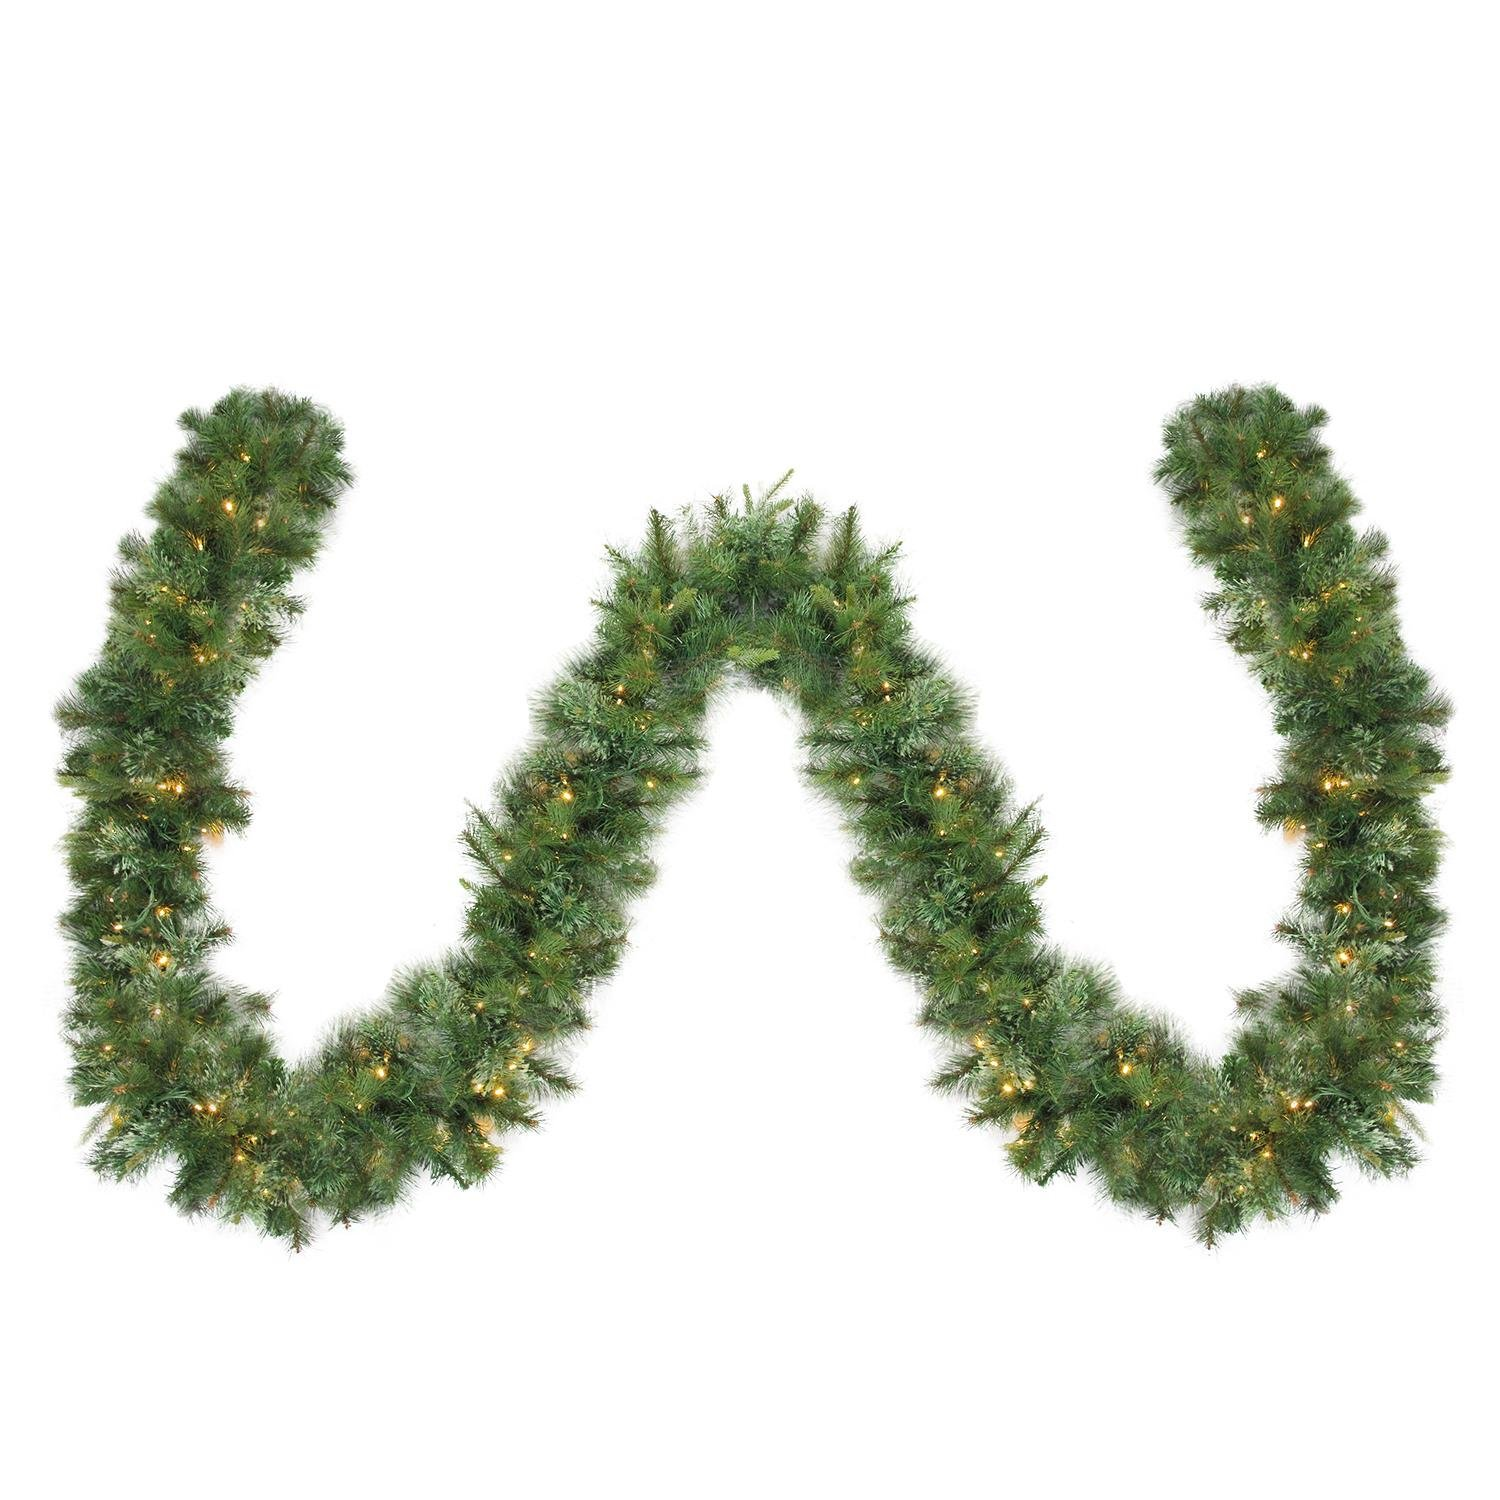 Northlight 50' x 14'' Pre-Lit Cashmere Mixed Pine Commercial Artificial Christmas Garland-Warm White LED Lights, Green